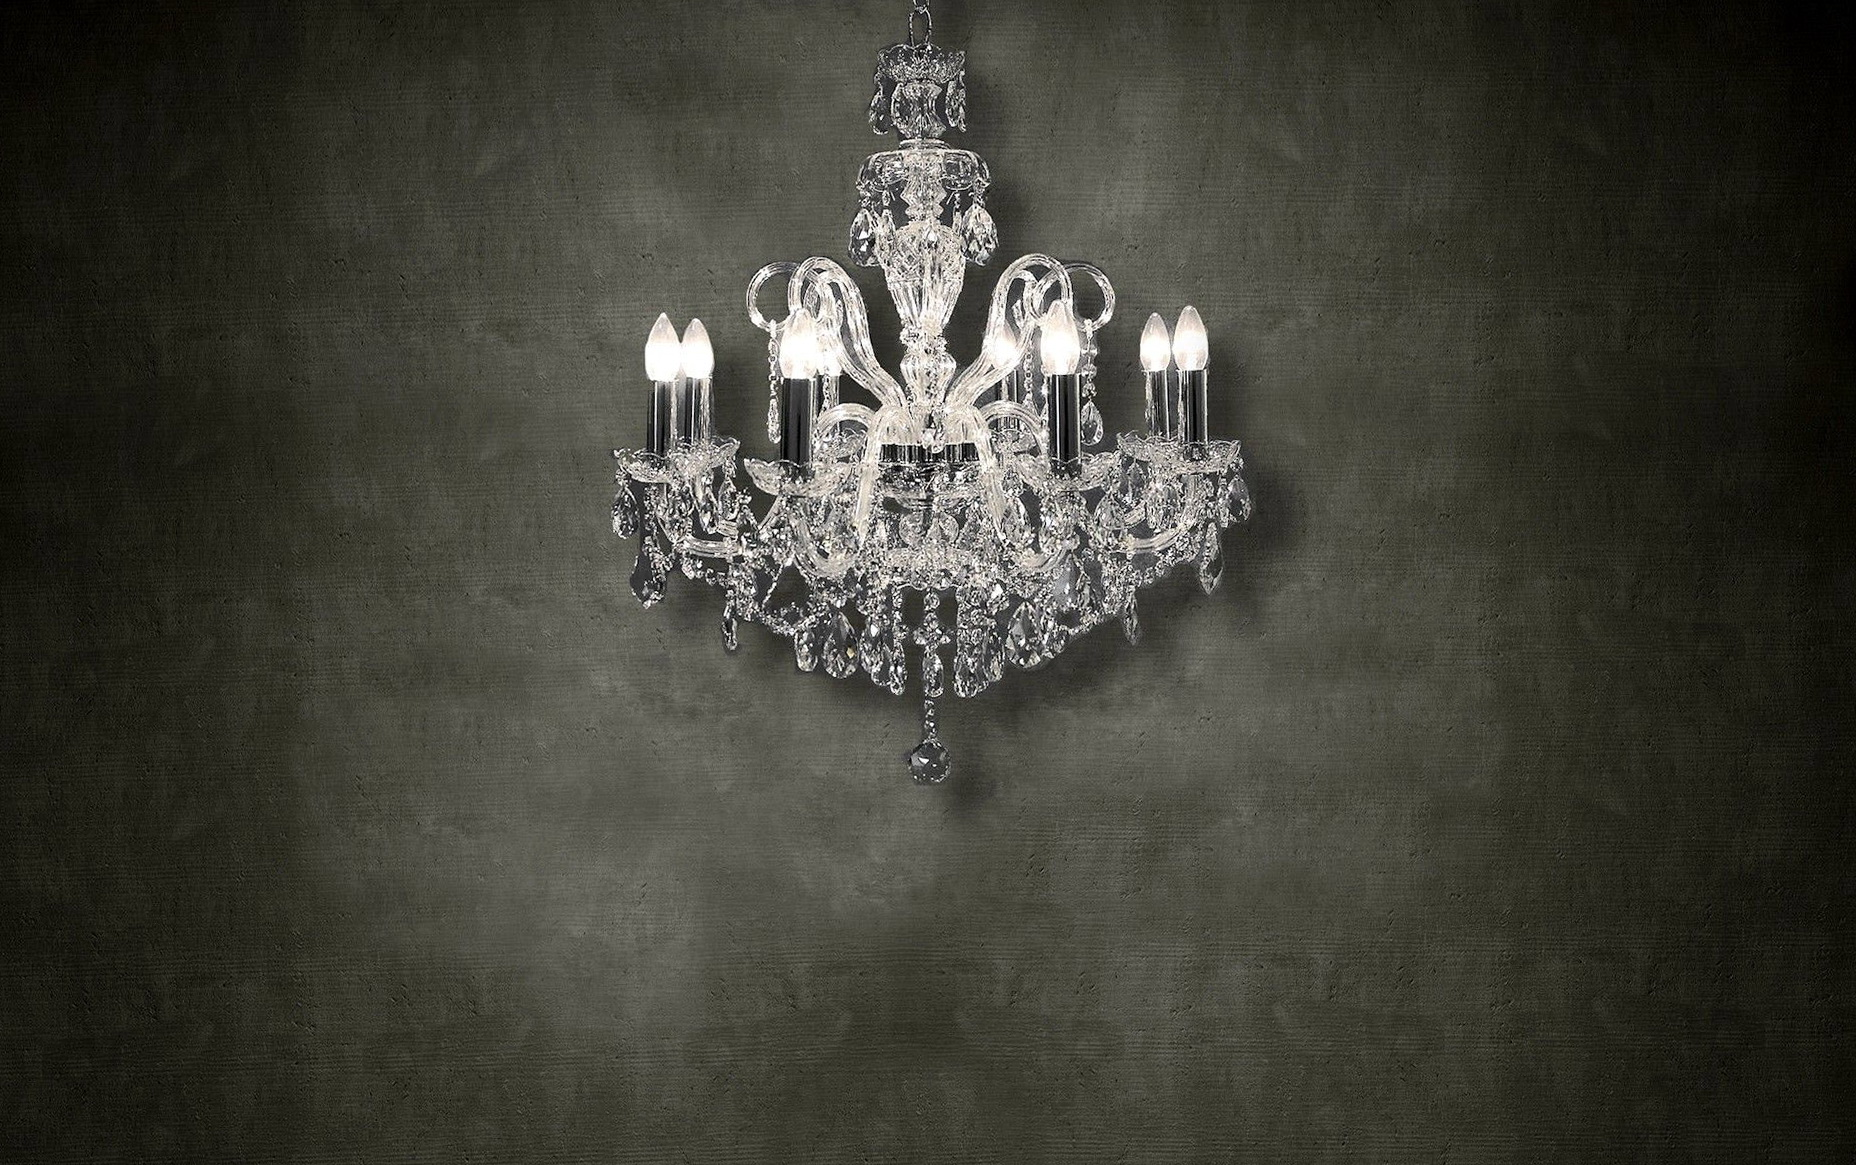 Black And White Chandelier Background